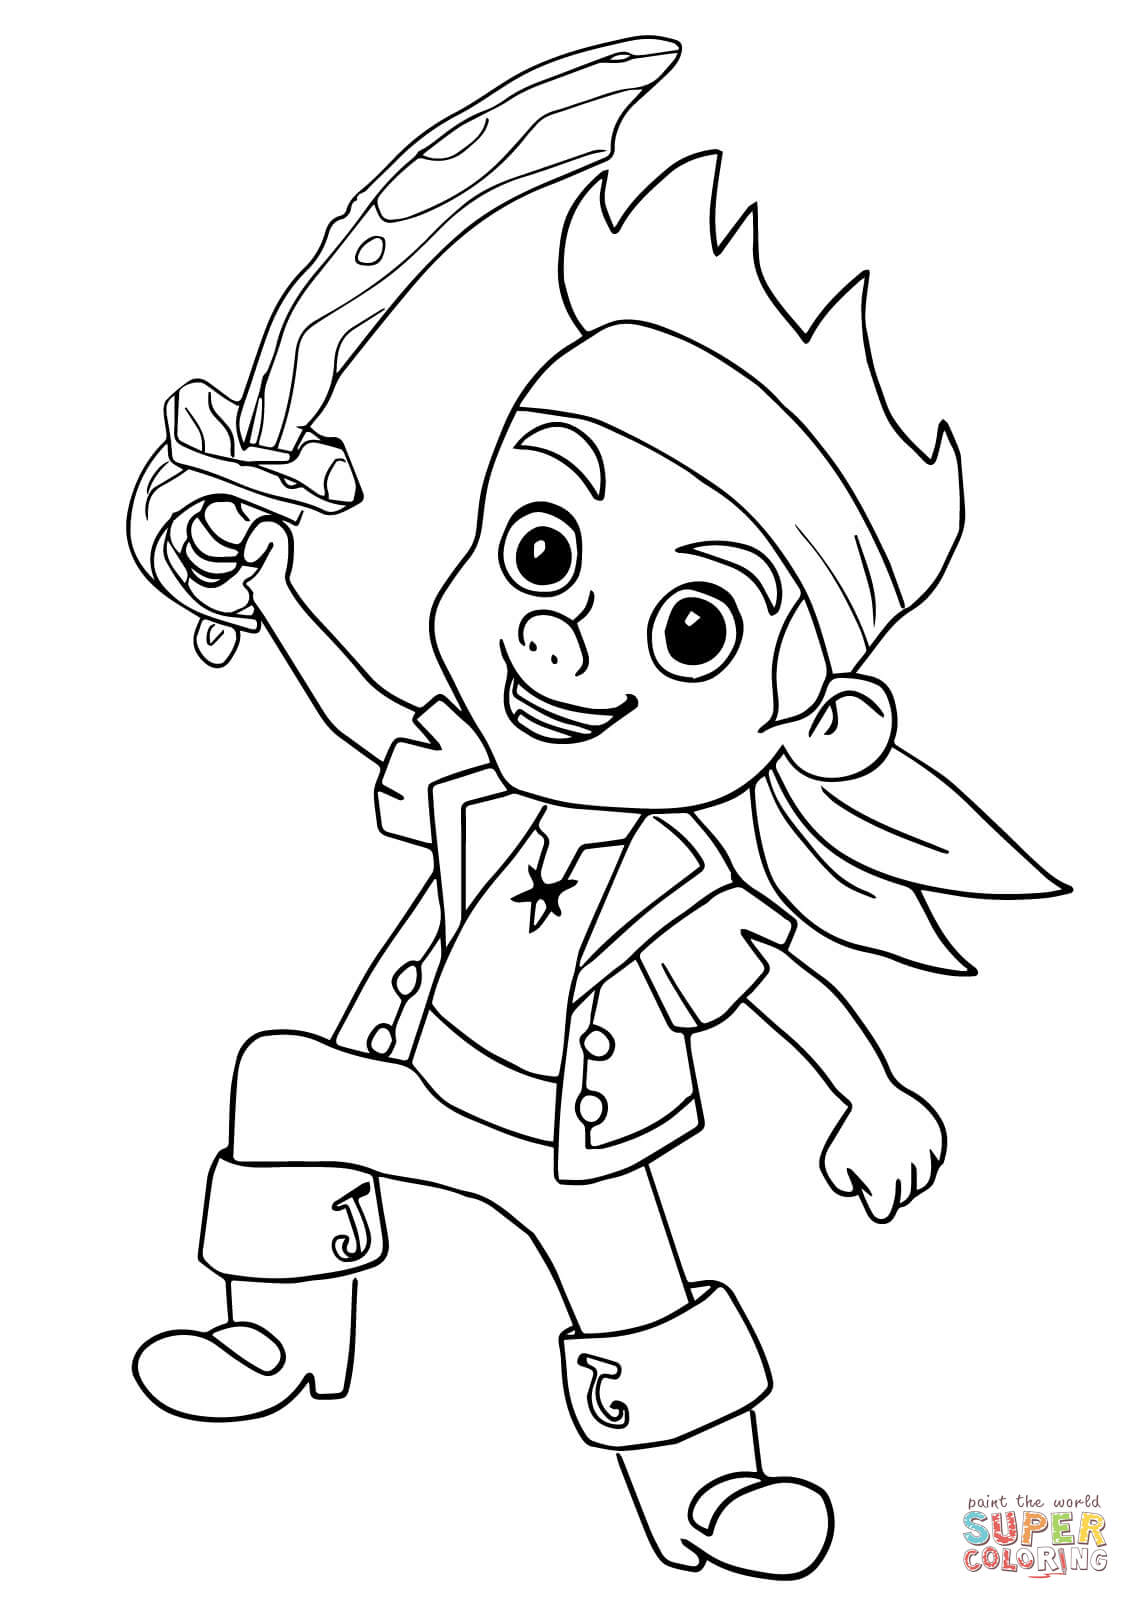 Free Coloring Pages For Captain Jake And The Neverland Pirates ... | 1600x1131